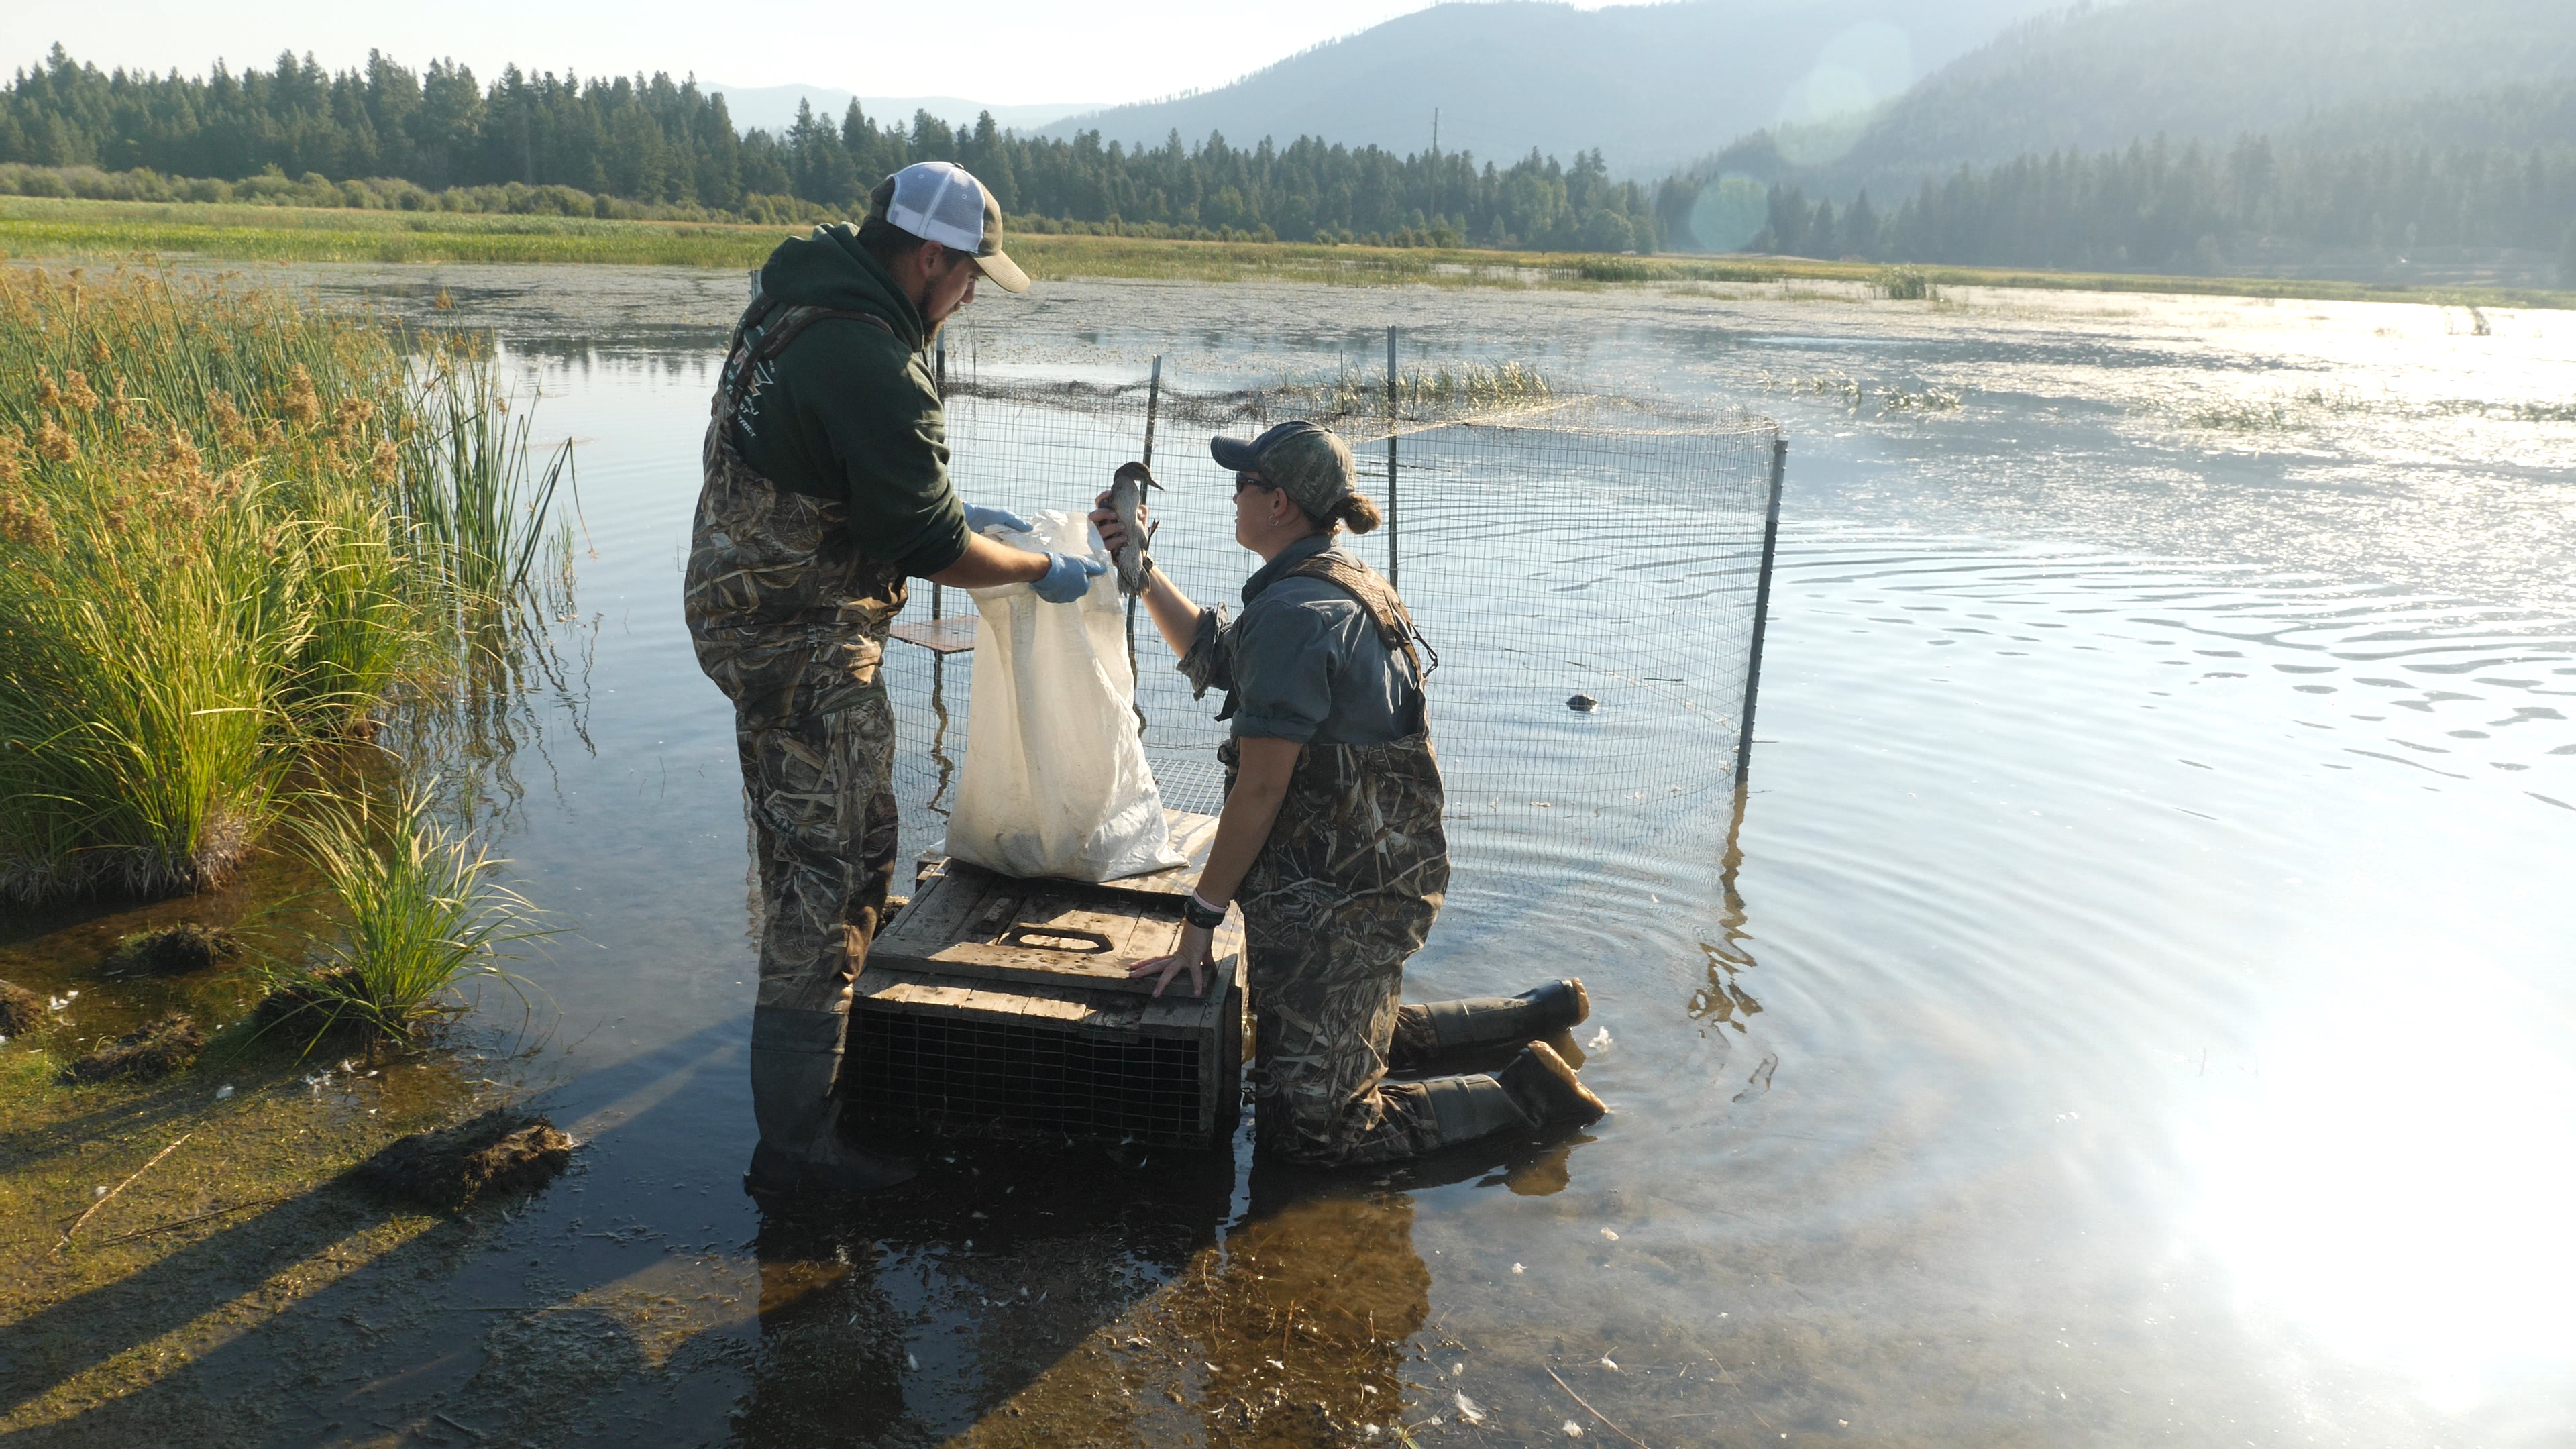 Collecting ducks from trap